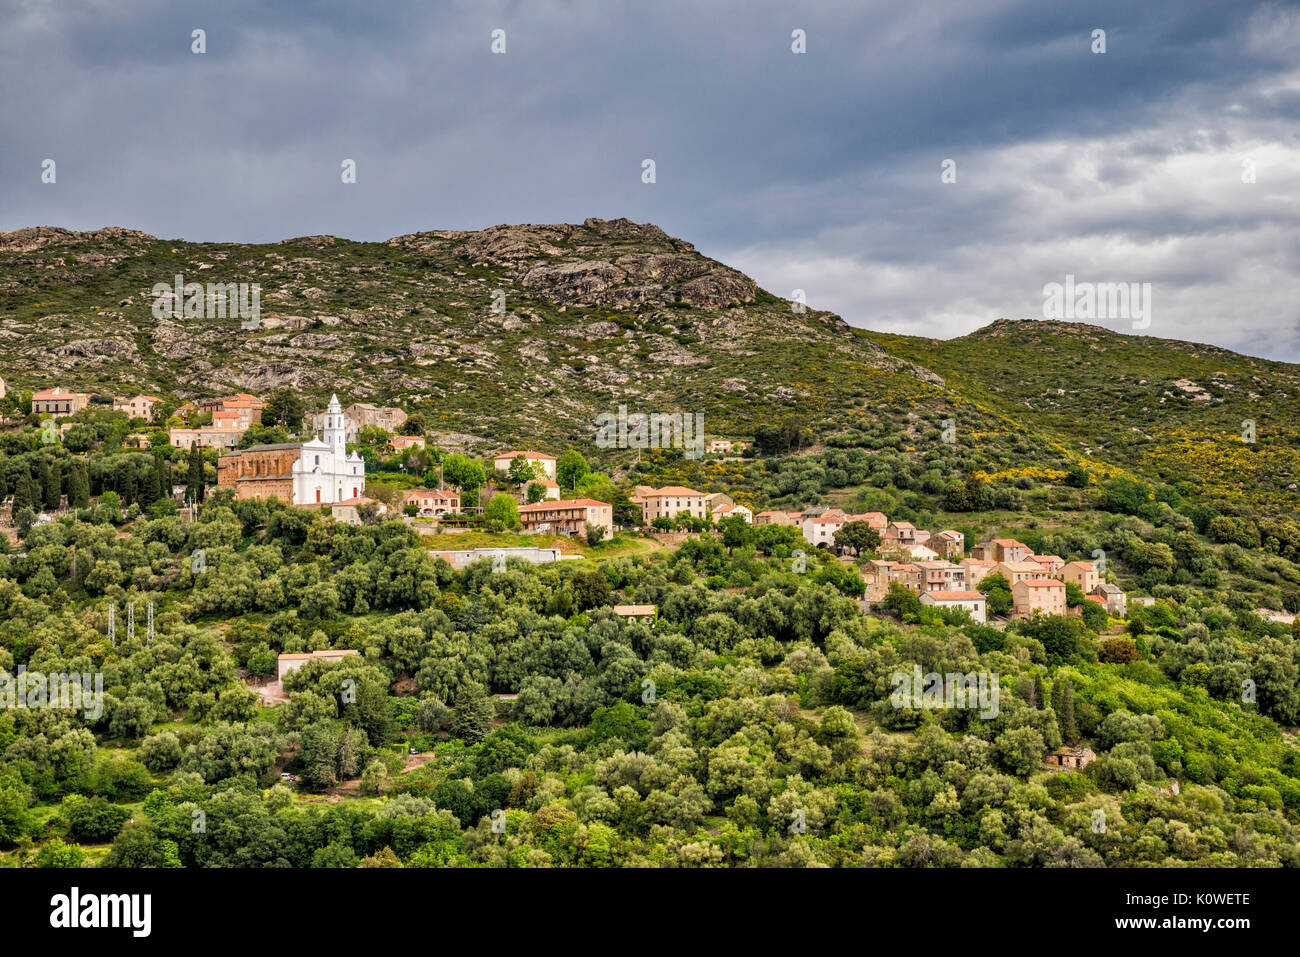 Hillside village of Santo-Pietro-di-Tenda, Nebbio region, Haute-Corse department, Corsica, France - Stock Image